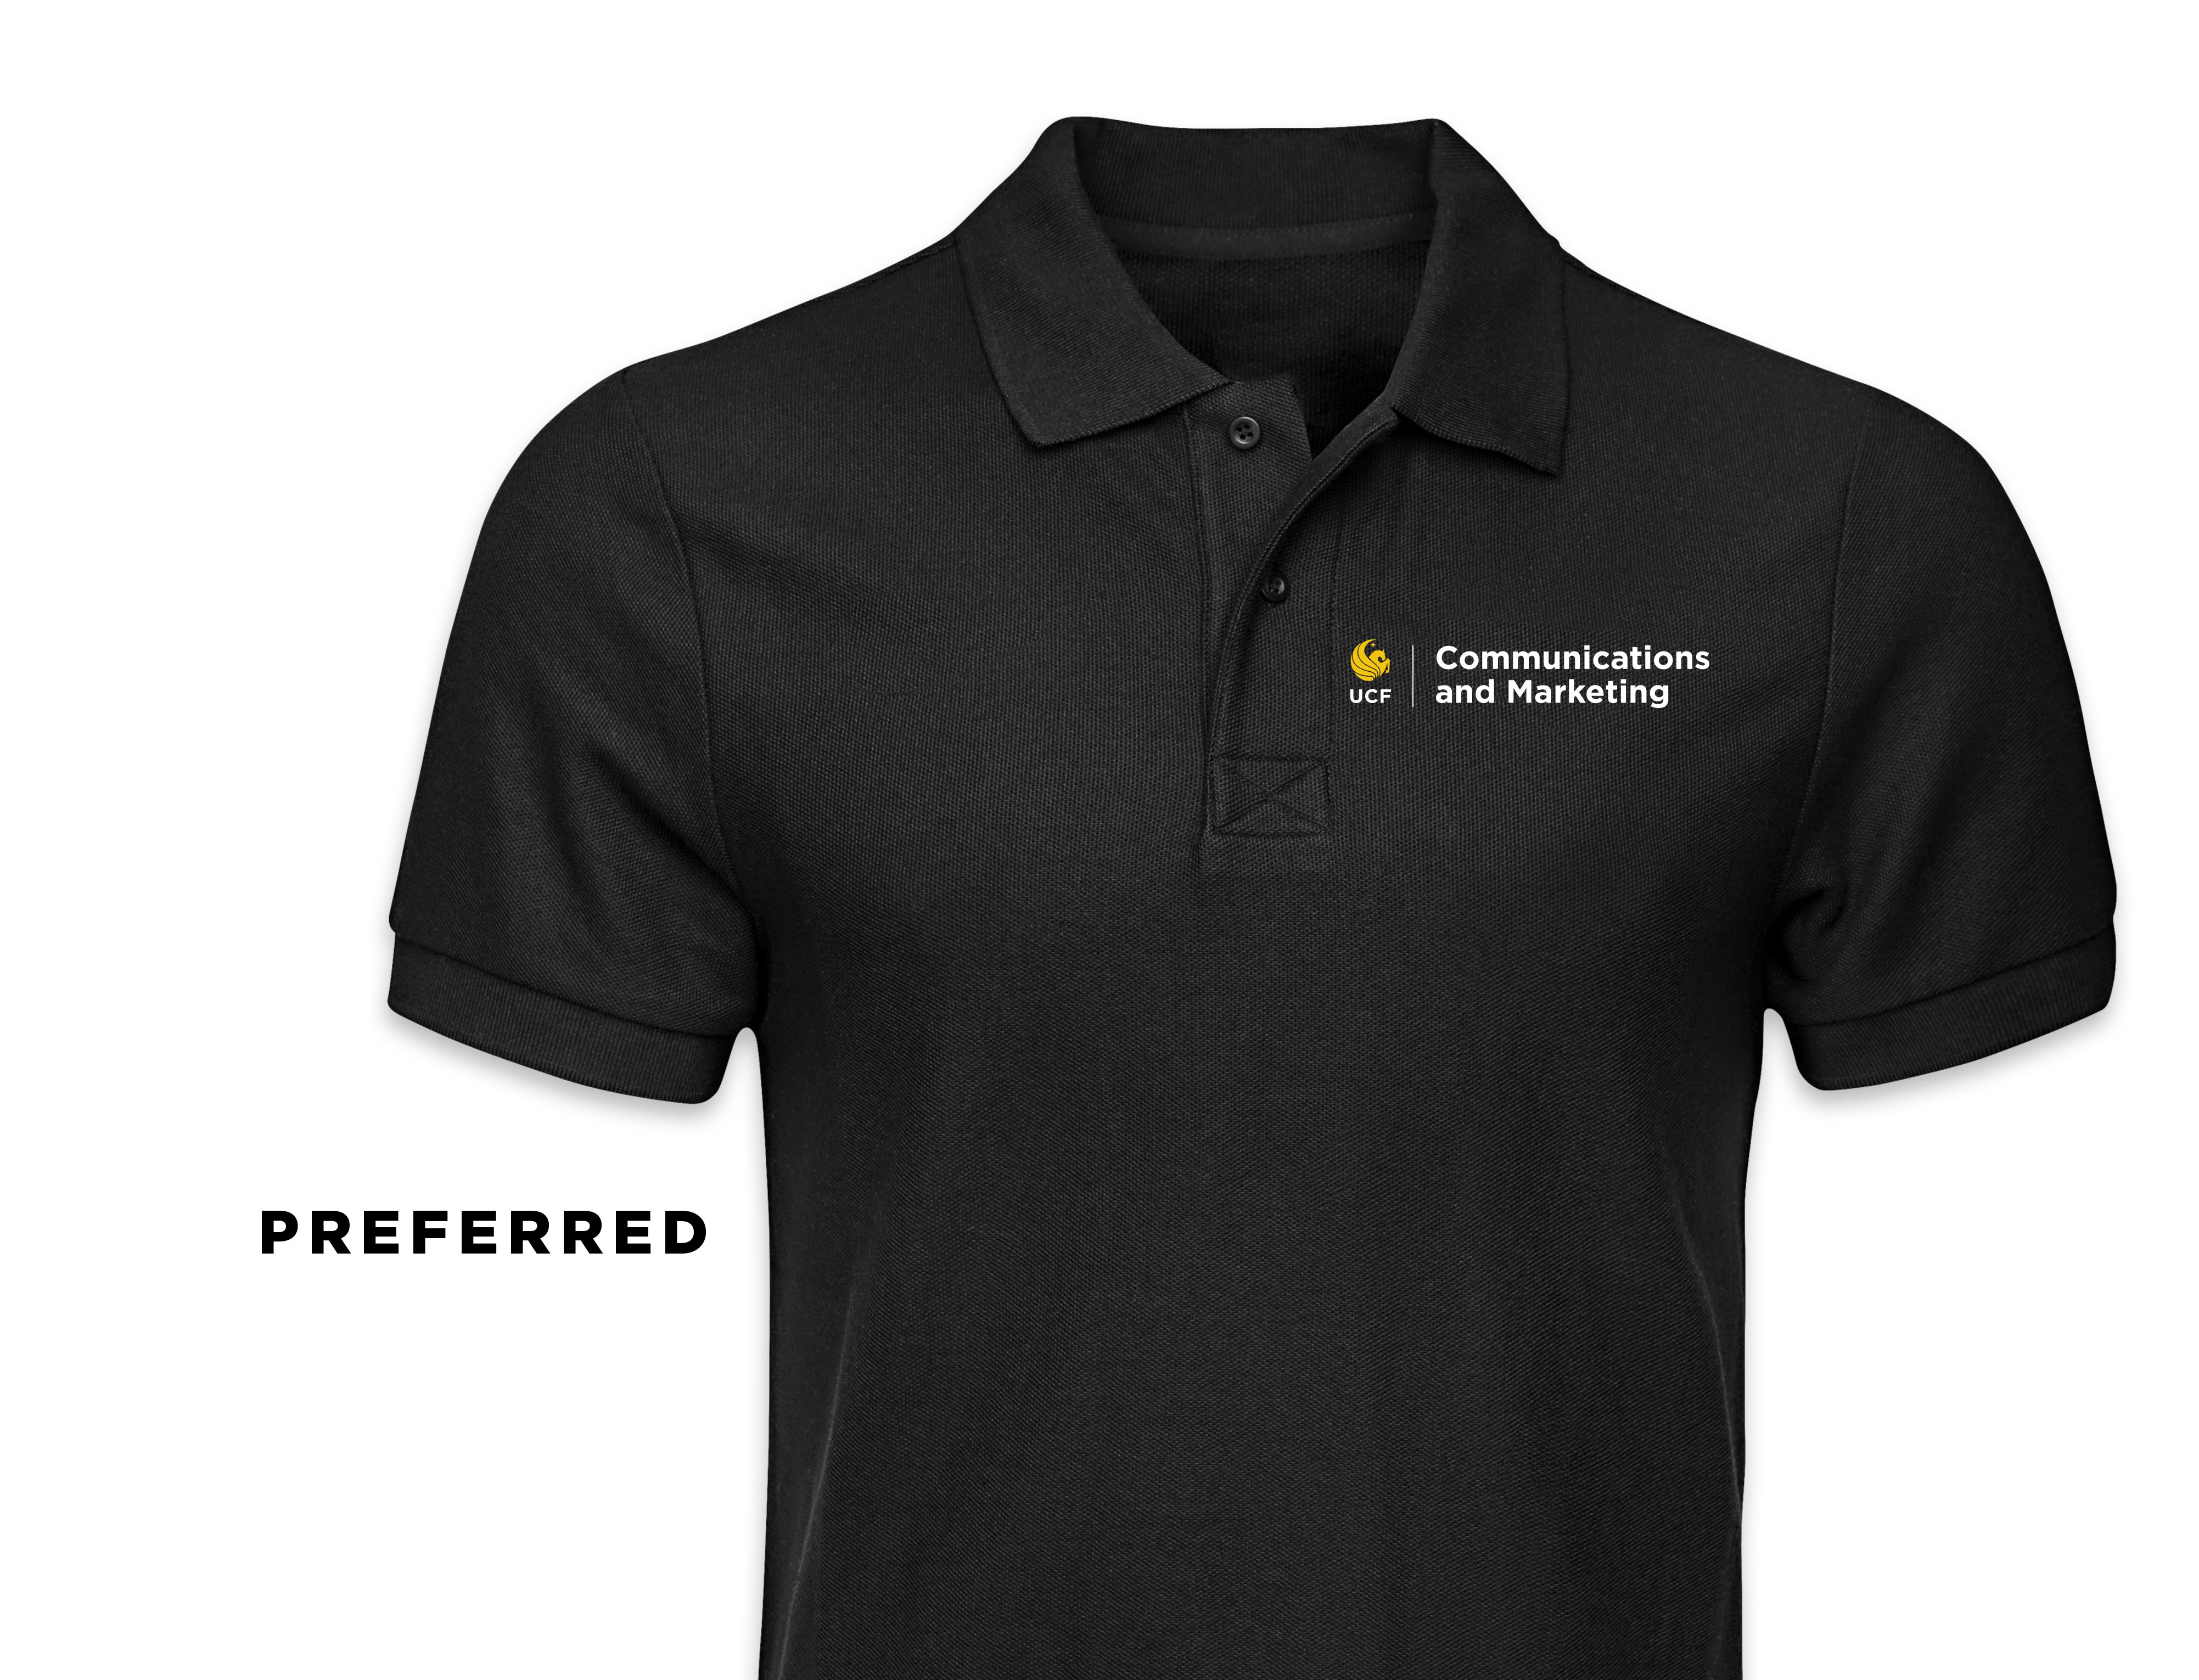 The preferred polo shirt design uses your Unit Identity Lockup to the left of the buttons.